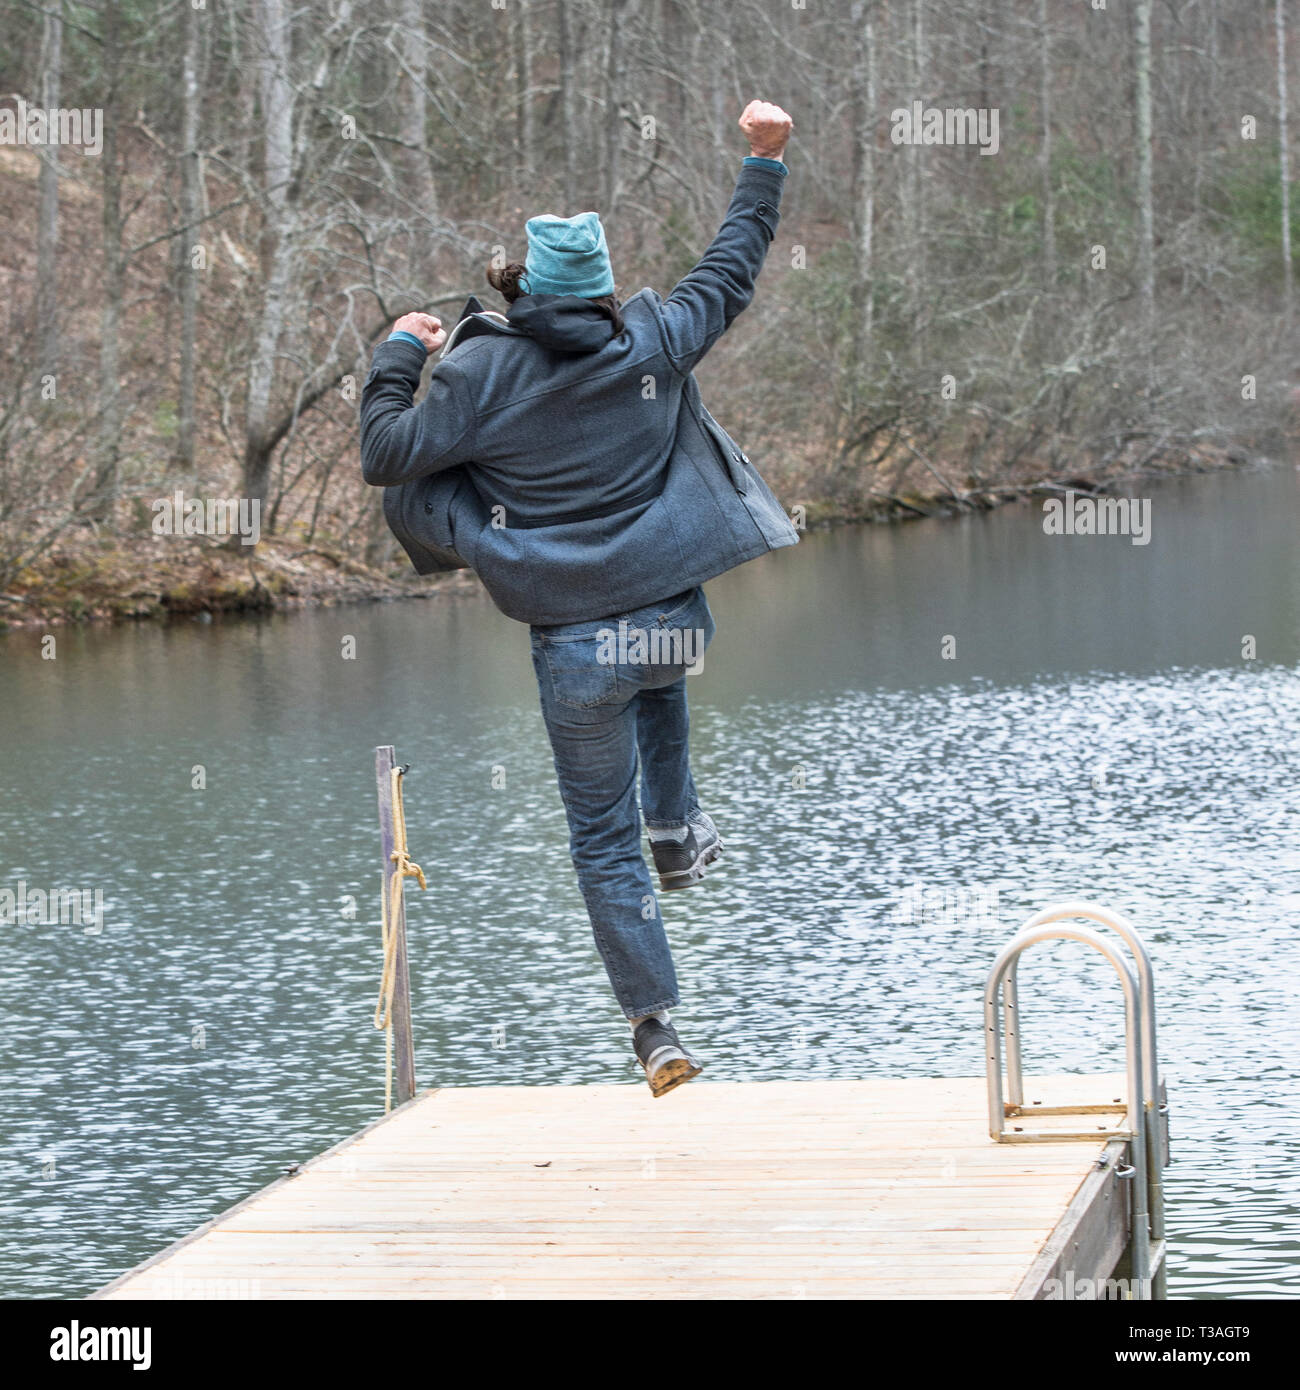 Jumping for joy, a man expresses exuberance by taking a leap into the air,  punching arm into the air. Viewing his back. - Stock Image